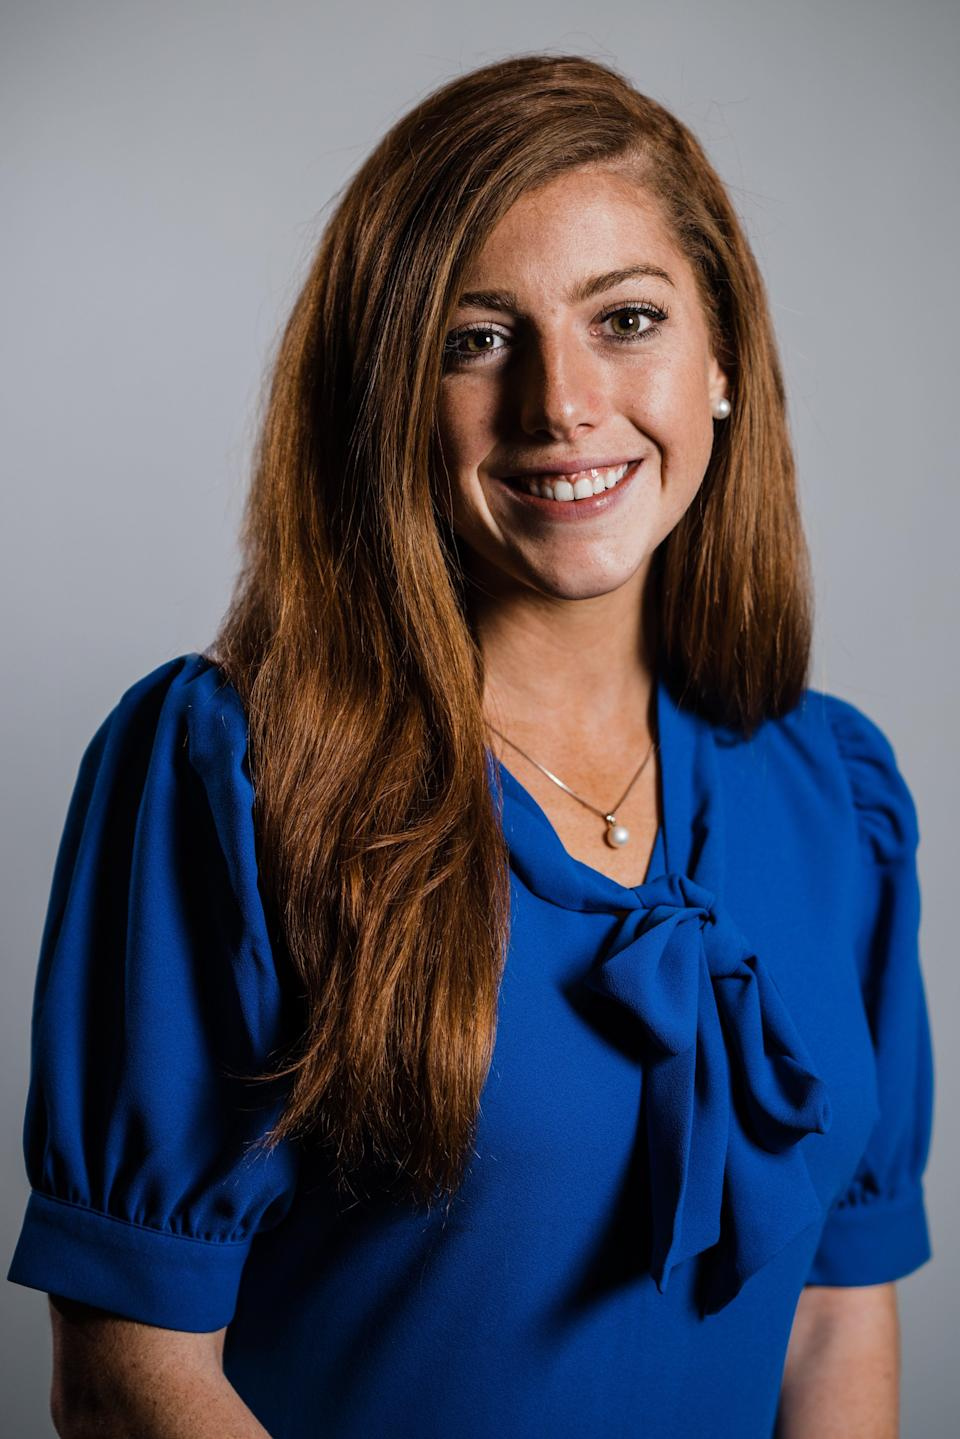 Theresa Olohan is an Opinion fellow on the USA TODAY Editorial Board. She is a recent graduate of the University of Notre Dame, where she studied political science and journalism.